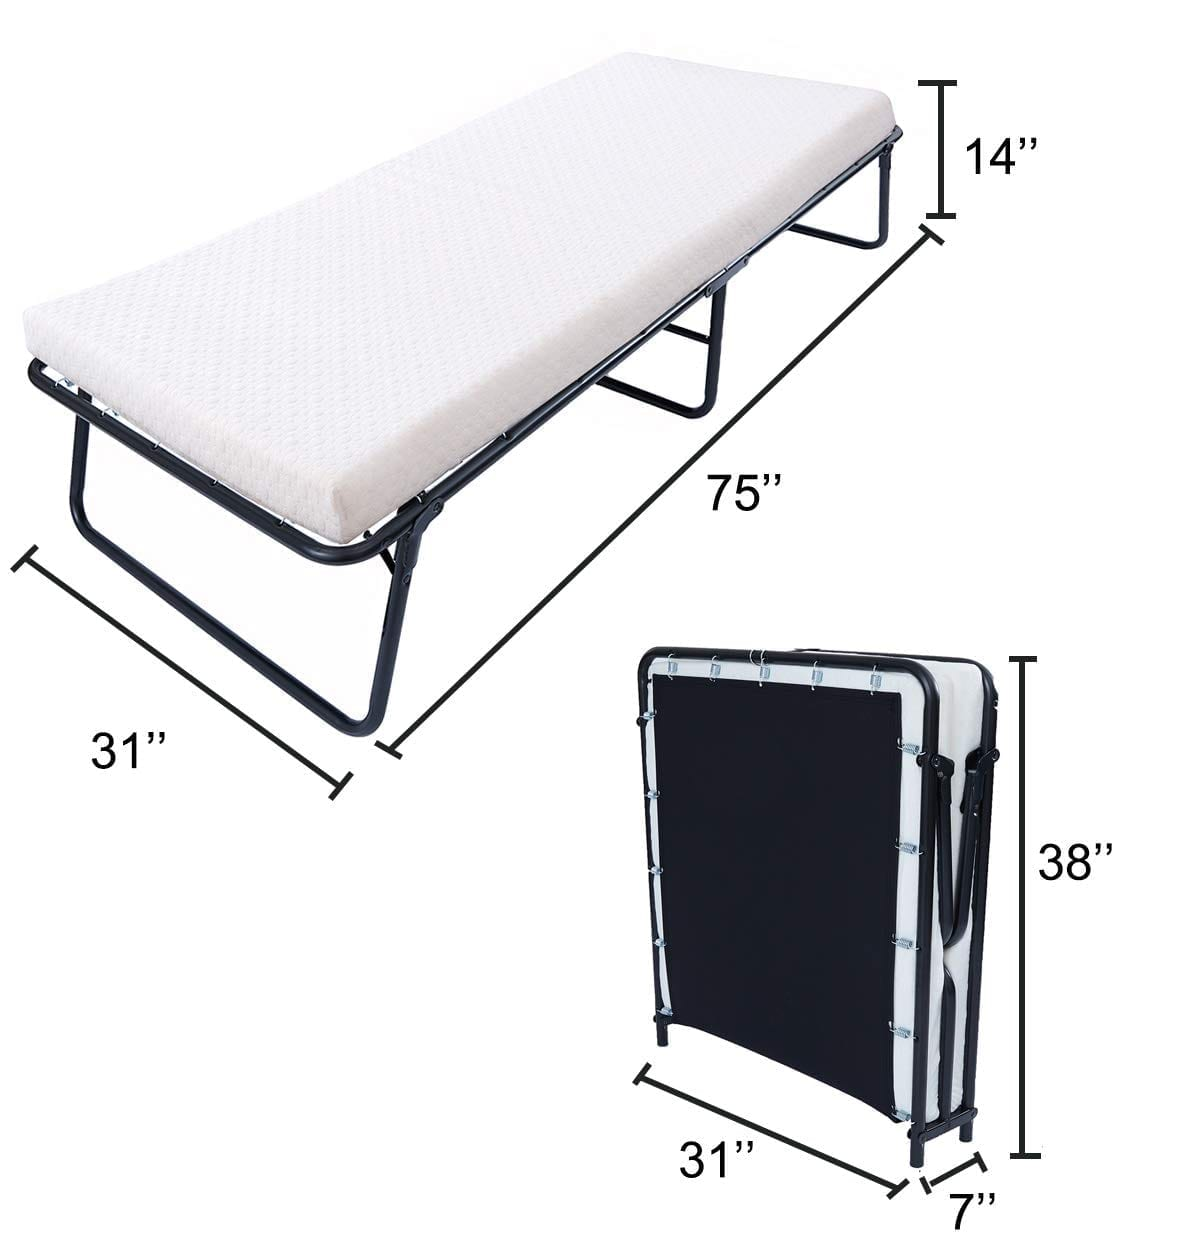 Foldable Guest Bed By LEISUIT